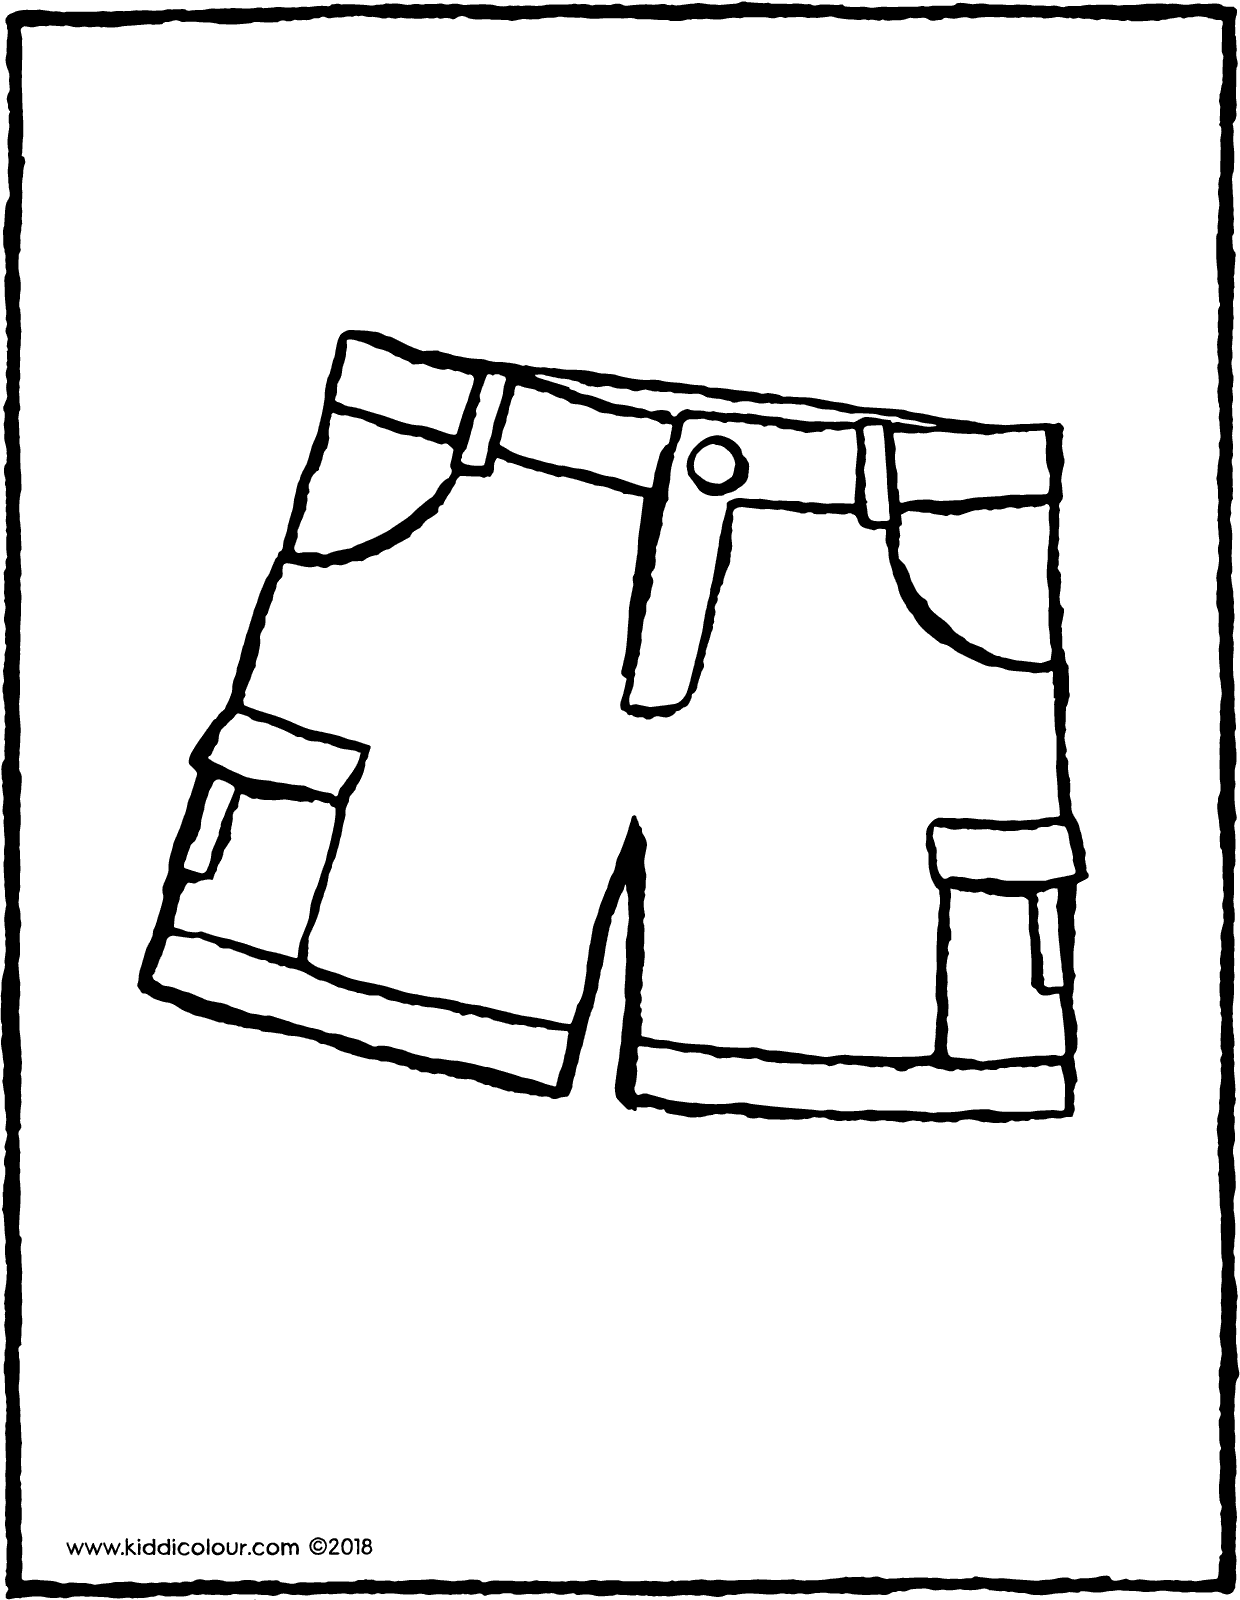 shorts colouring page drawing picture